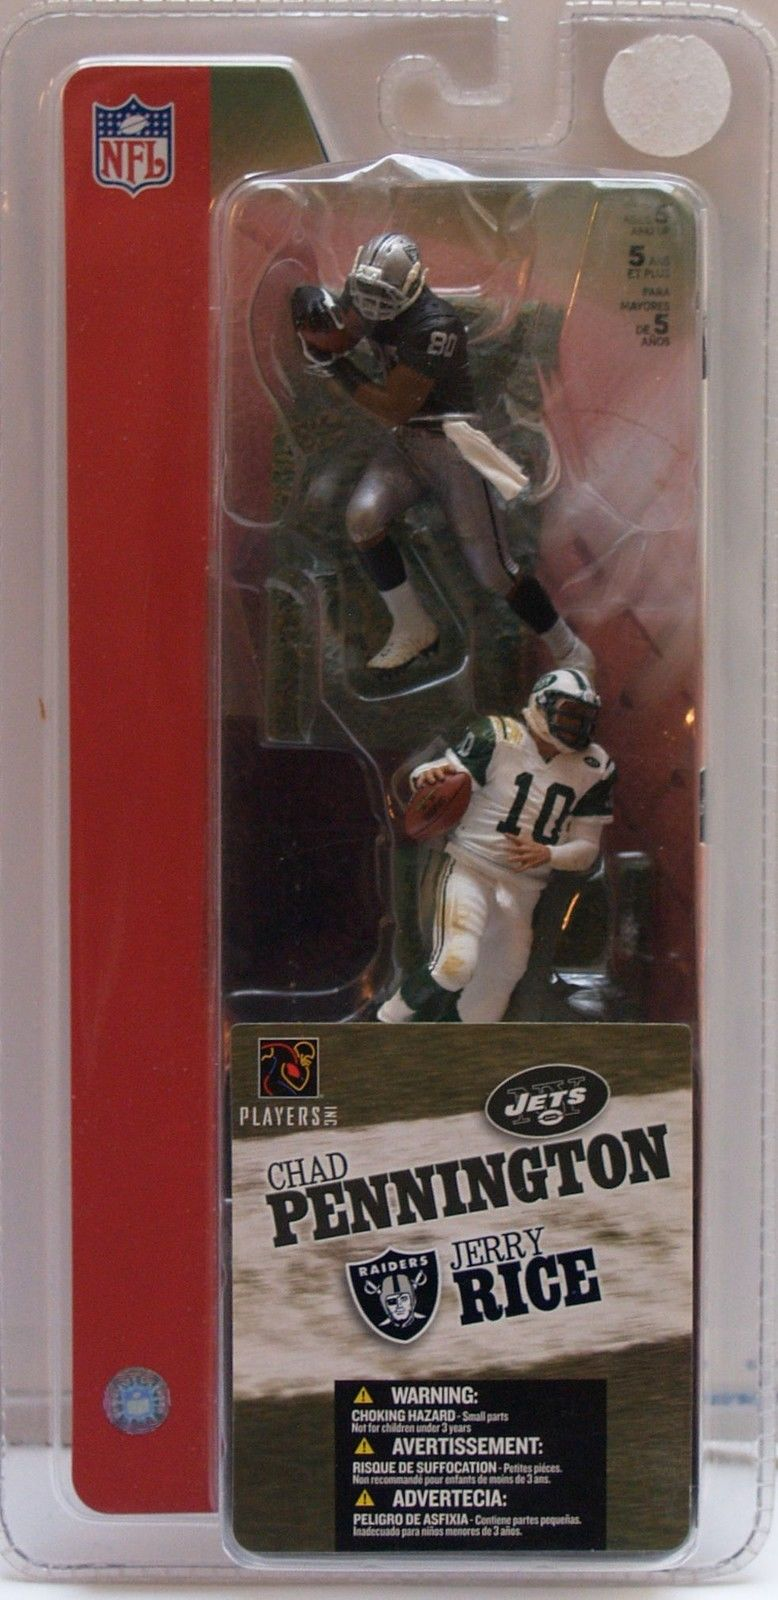 McFARLANE SPORTS NFL ACTION FIGURES - JERRY RICE #80 & CHAD PENNINGTON #10